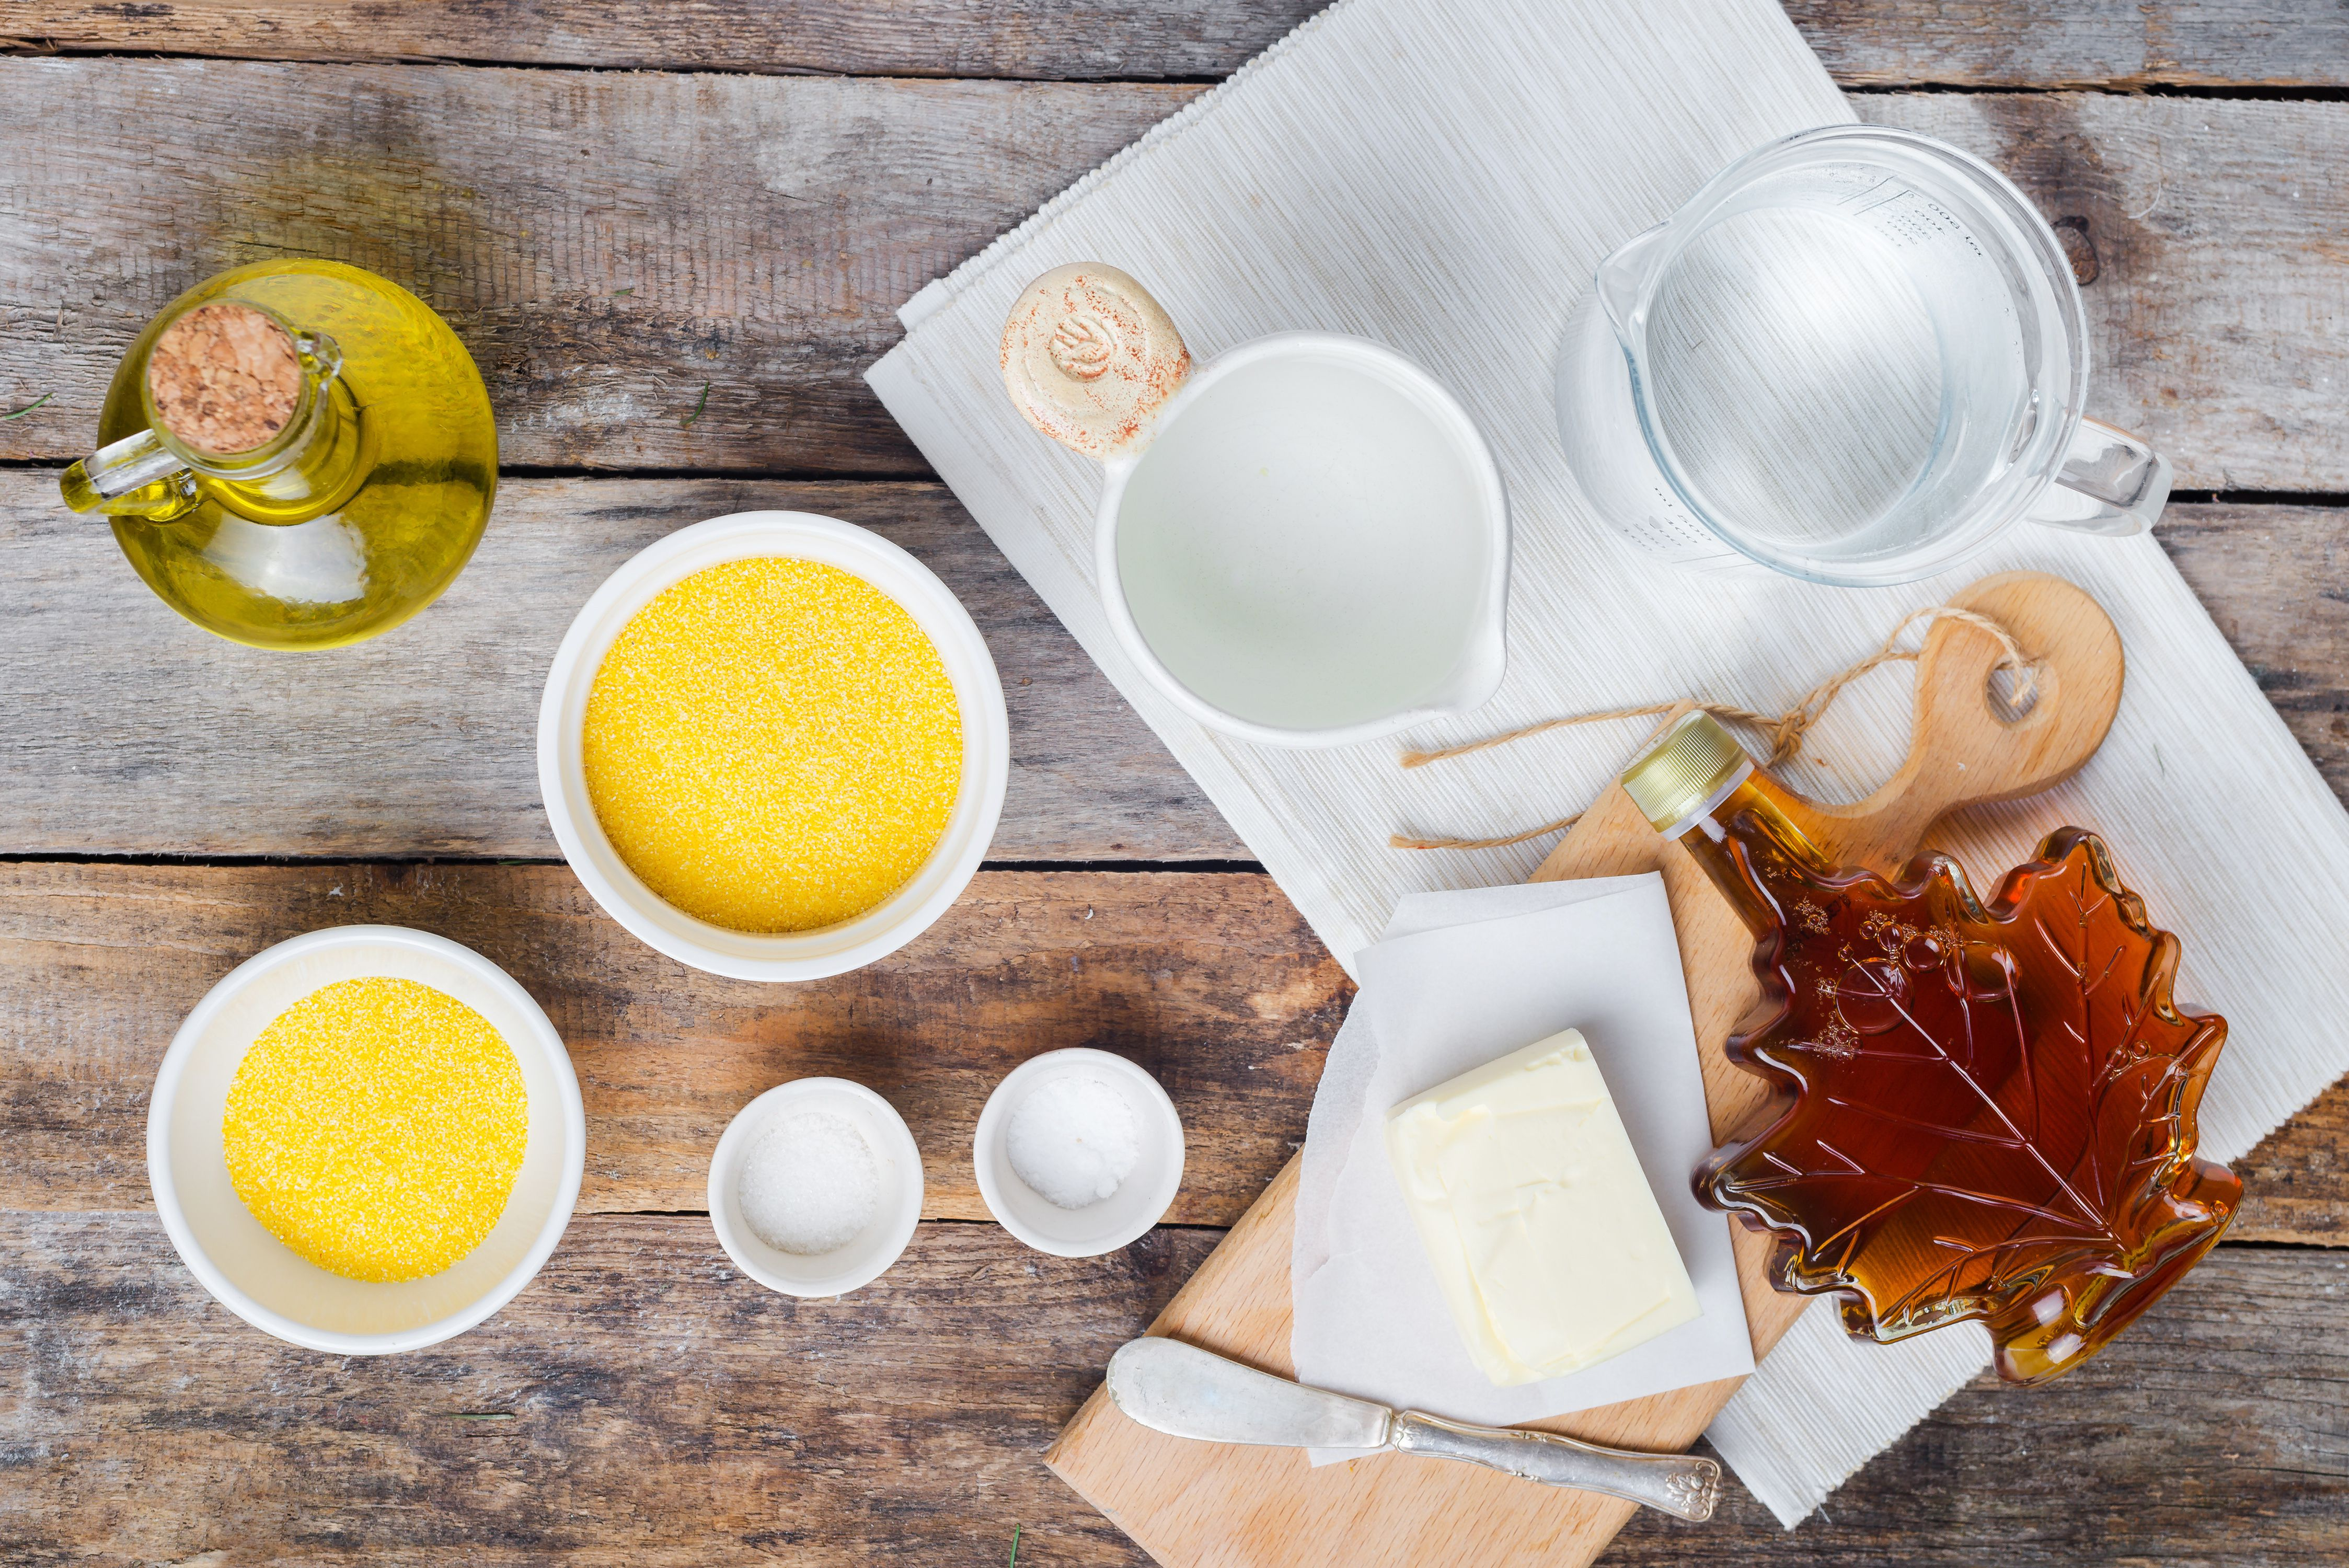 Ingredients for Southern fried cornmeal mush